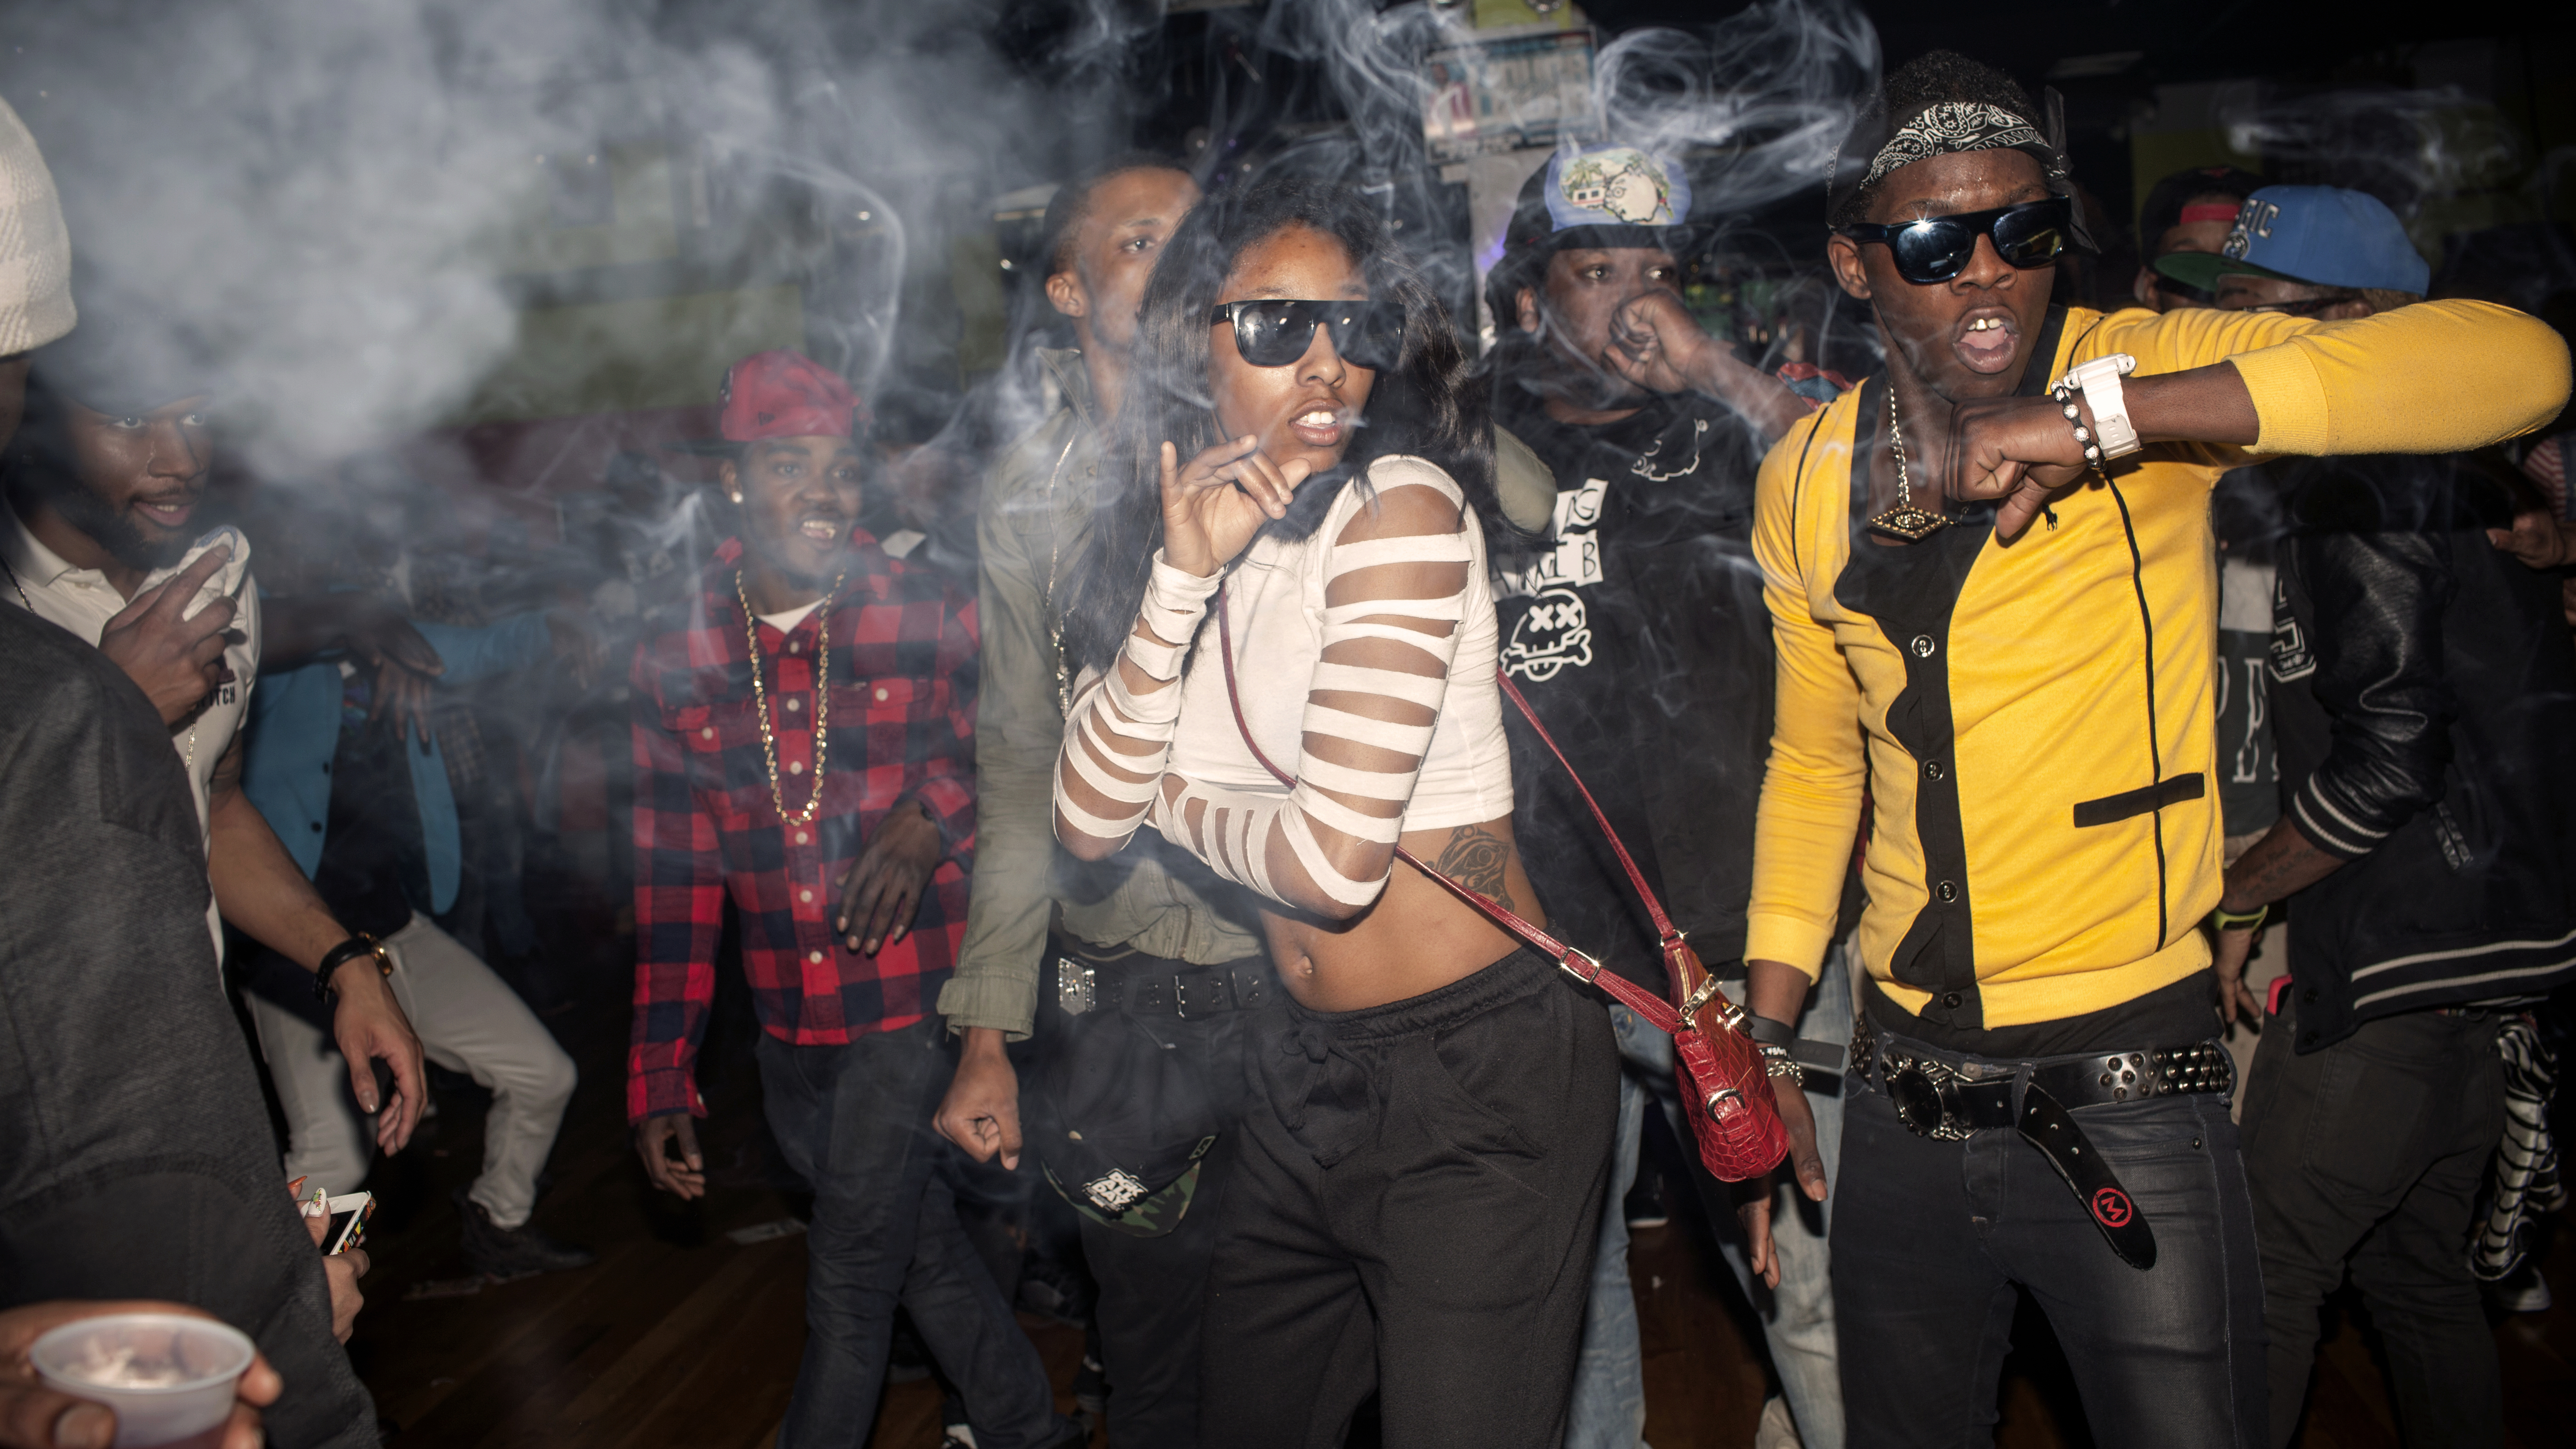 The Flavor Essence dance team moves through its choreography in unison as smoke clouds the air in a nightclub around 3am on a Thursday night. Videographers often attend the parties to make video of the dancers, which will be published on the internet on v